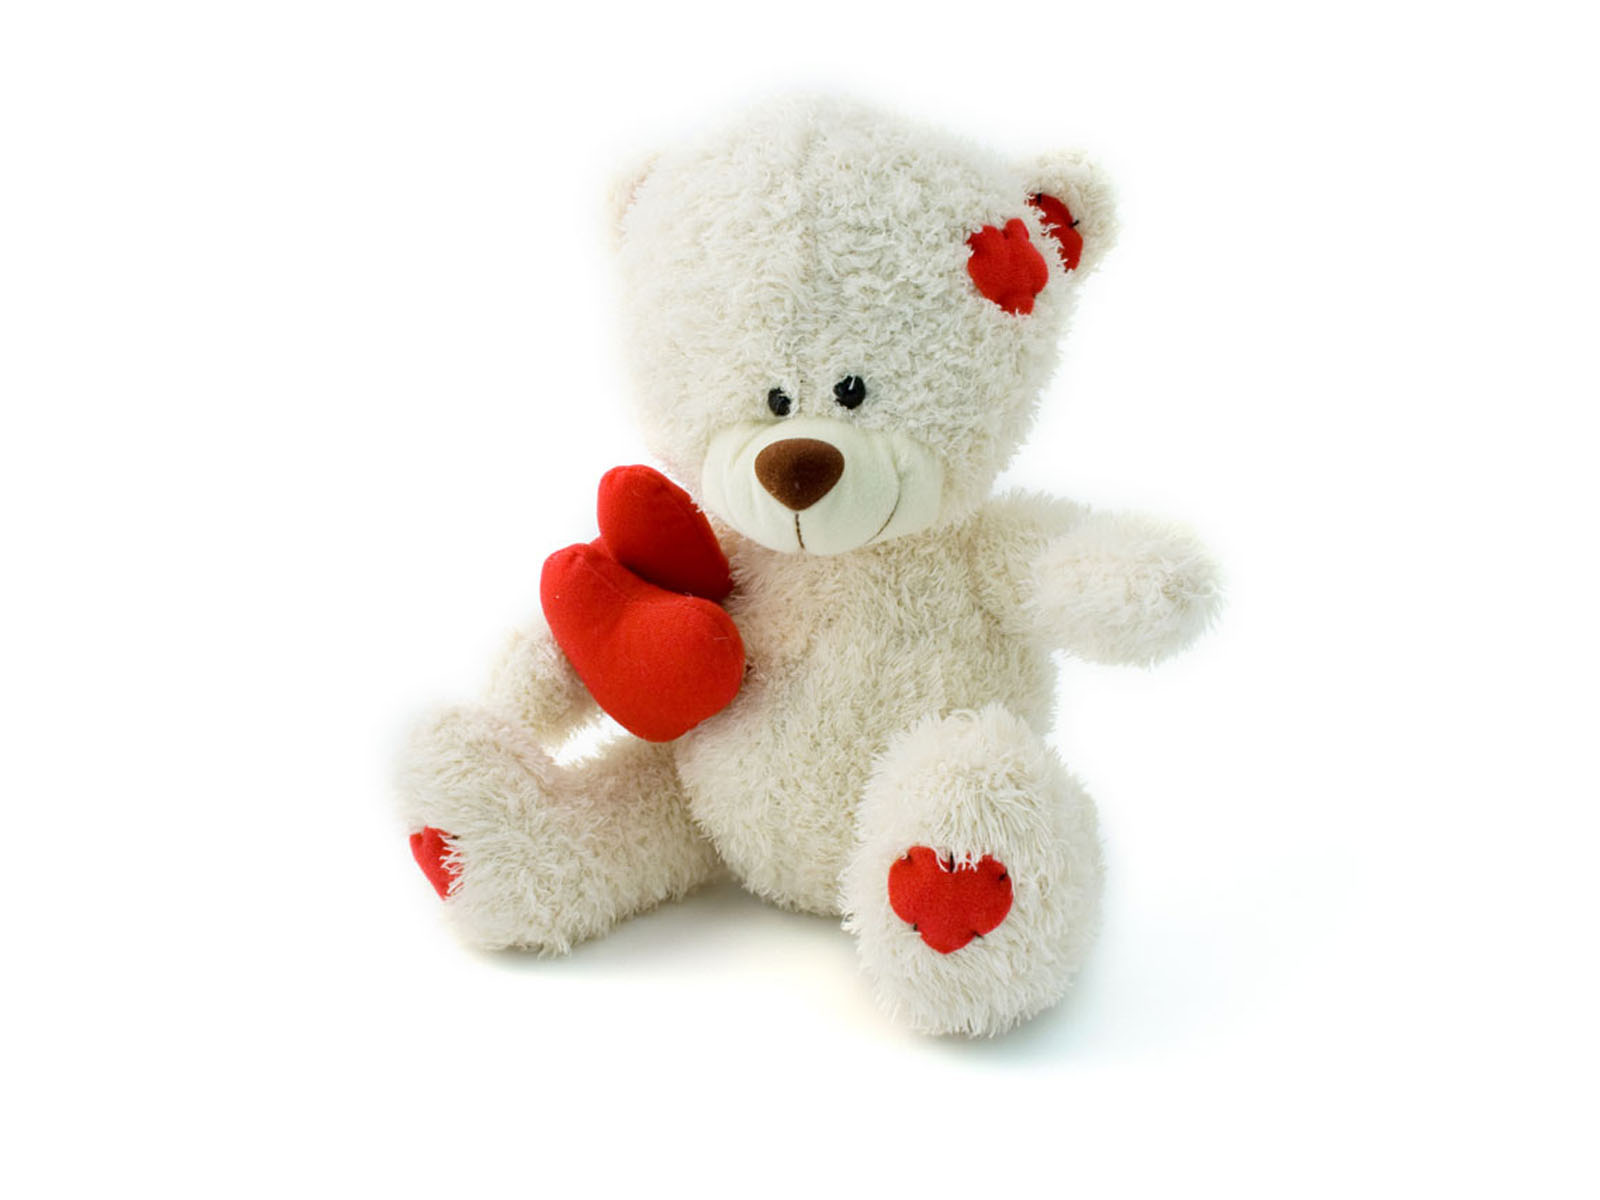 Wallpaper Love Teddy Bear Wallpapers